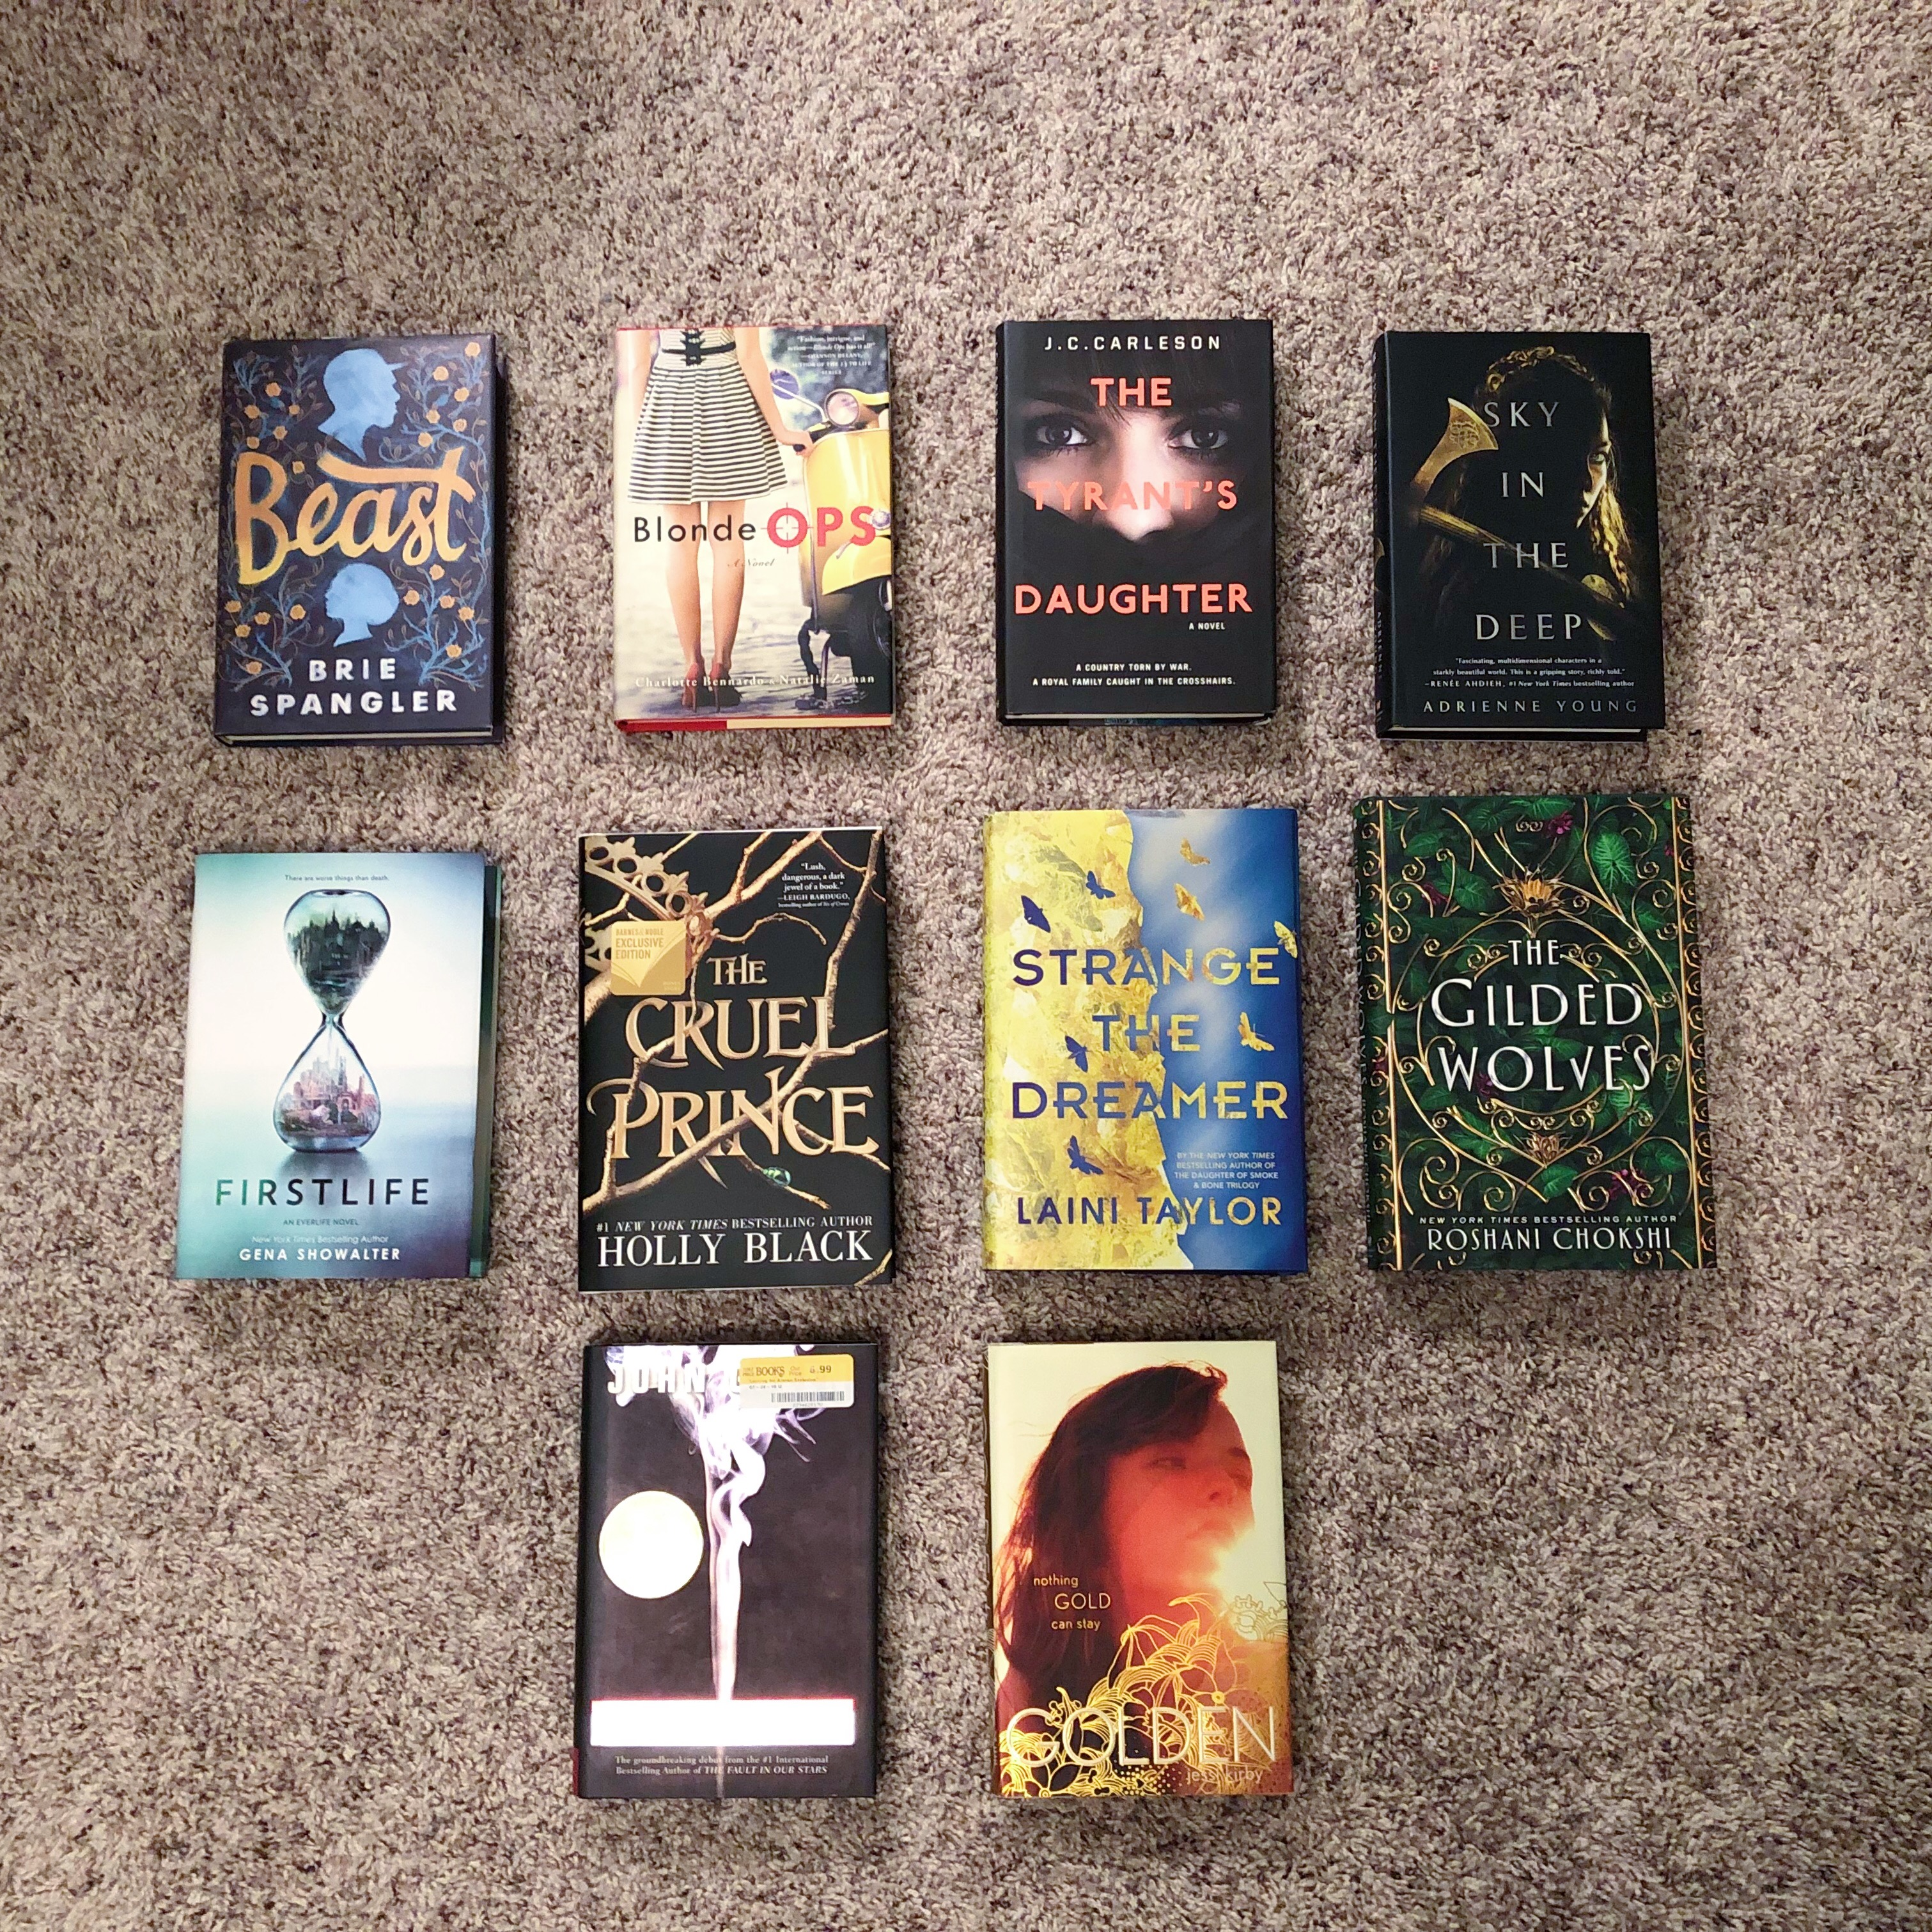 Photo of the covers of the books that had me spellbound